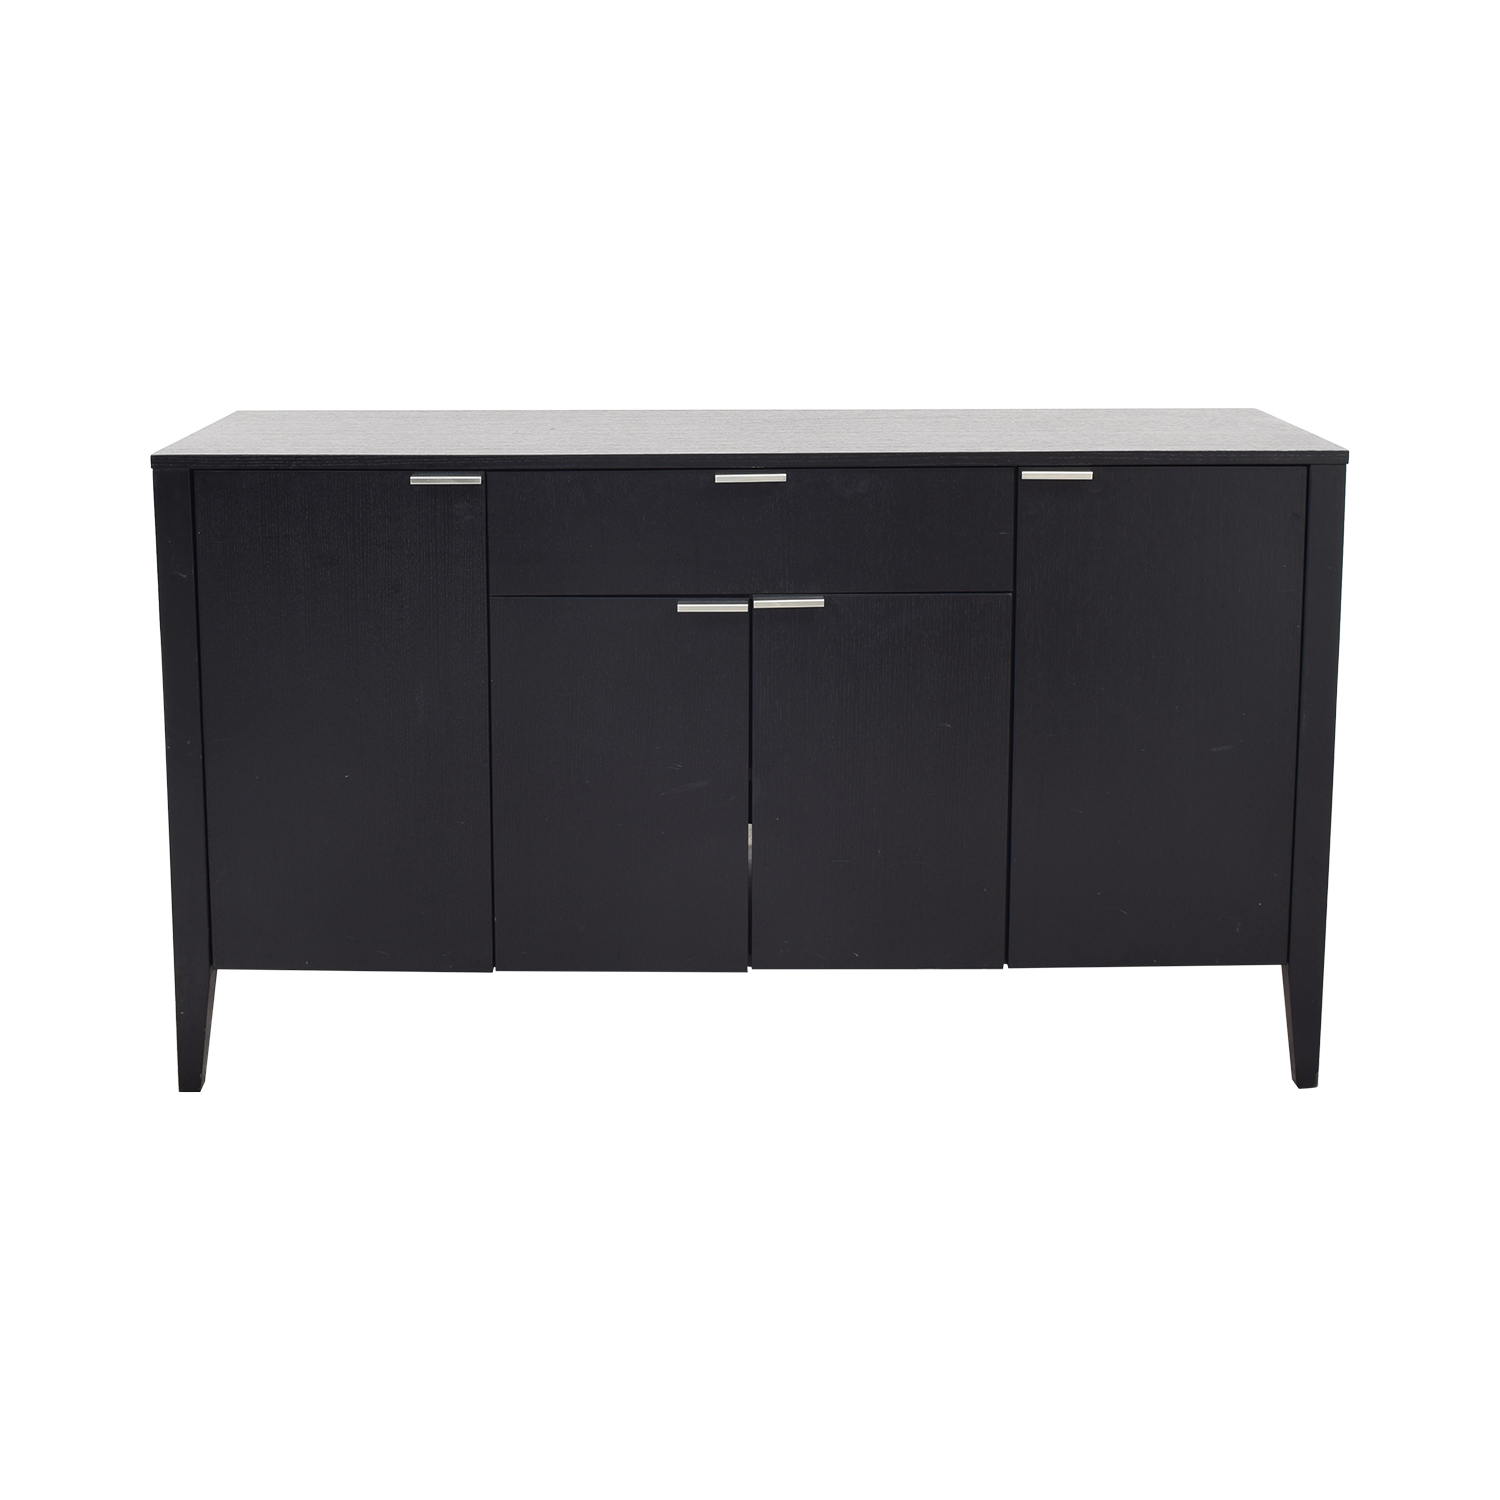 Crate & Barrel Crate & Barrel Sideboard discount